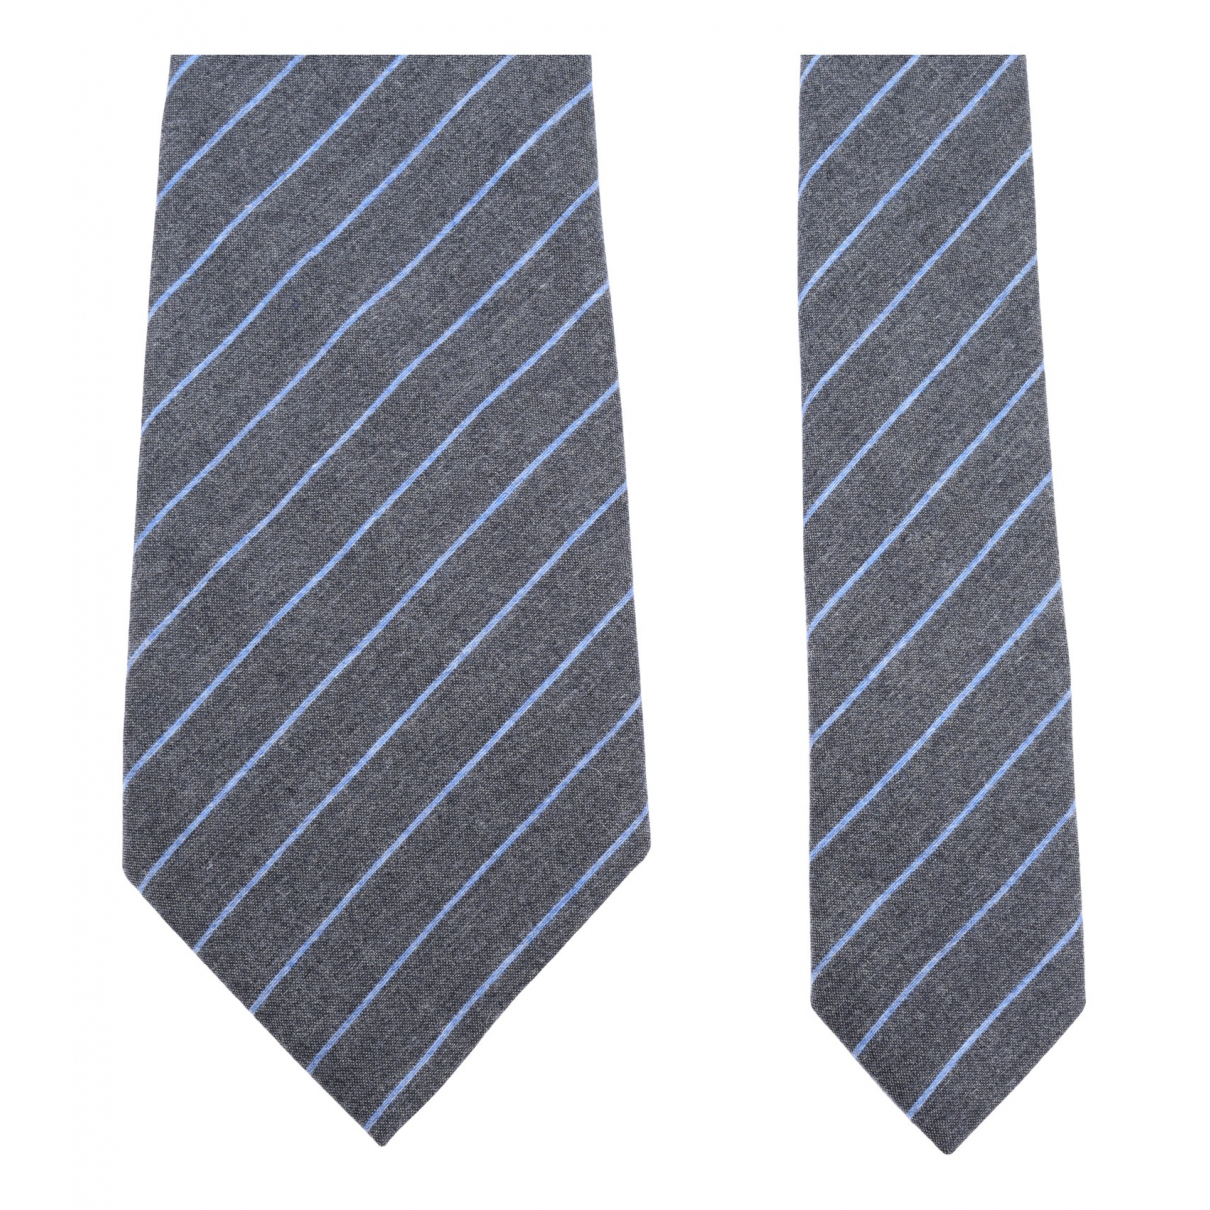 Giorgio Armani N Grey Cashmere Ties for Men N